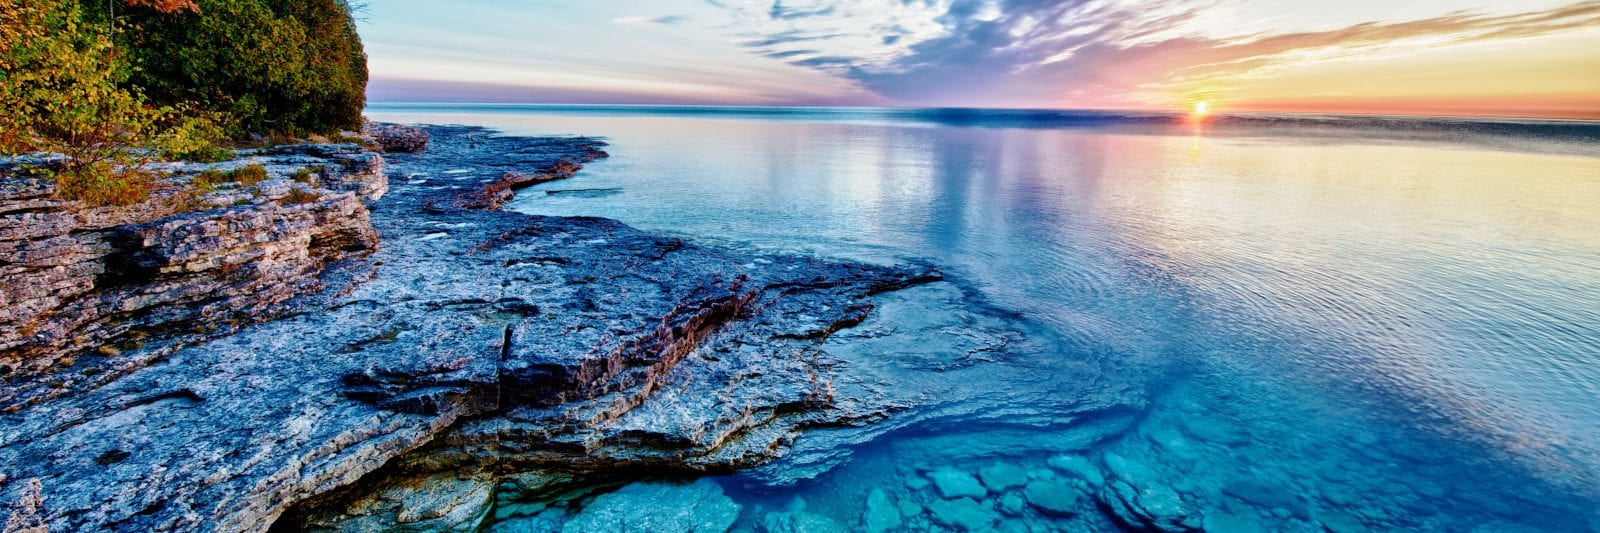 Door County Wisconsin Hiking Cave Point County Park Lake Michigan Sunrise